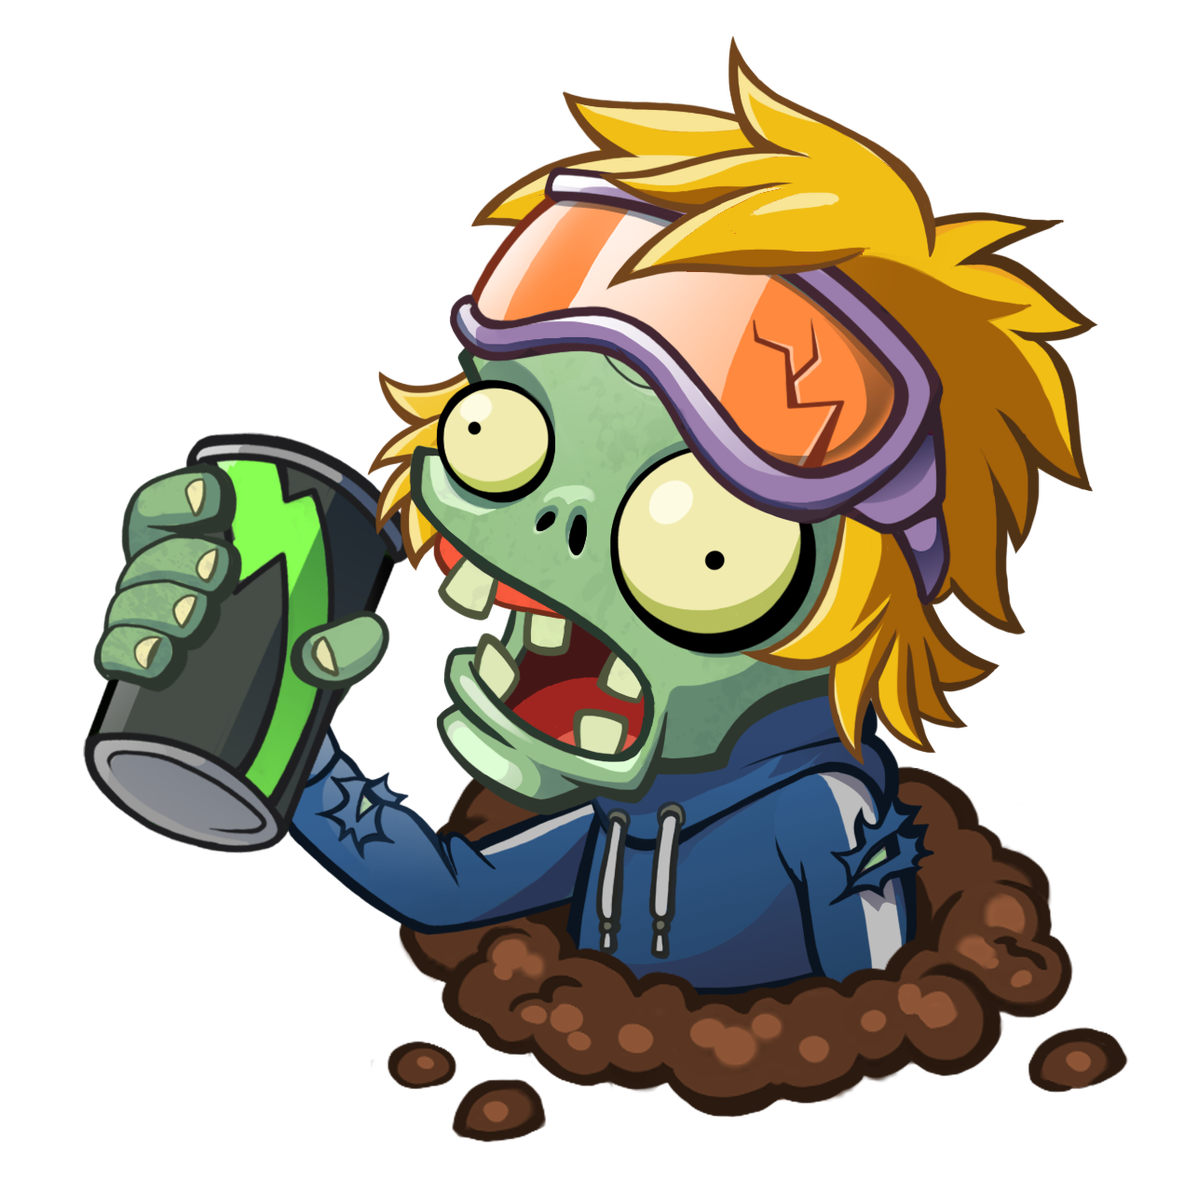 Plants vs zombies heroes png. On twitter energy drink